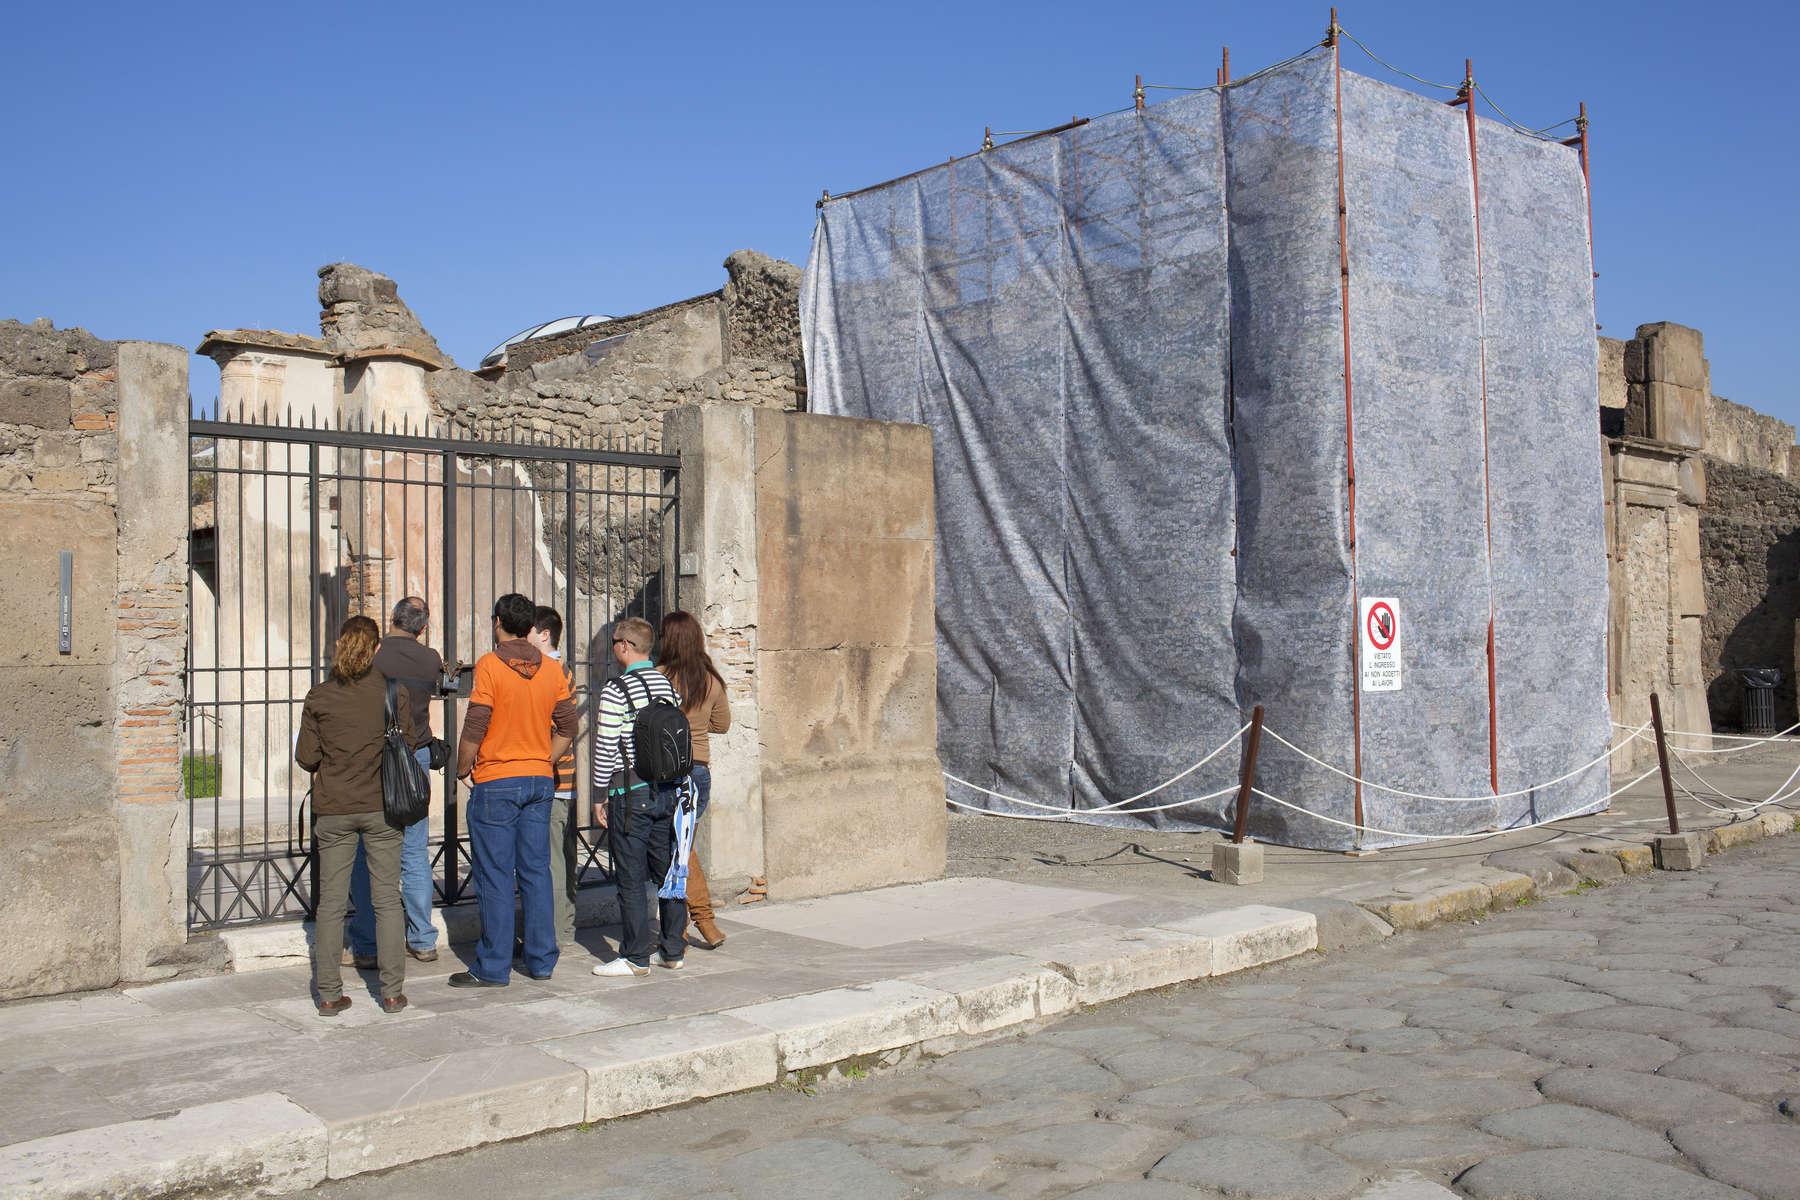 Visitors to the city of Pompeii, a partially buried Roman town near Naples in the Italian region of Campania. Pompeii was buried under ash and pumice after Mount Vesuvius erupted in AD79. Today, the UNESCO World Heritage Site attracts approximately 2,500,000 annually.+44(0)7711058090peter@peterdench.comPhotography ©Peter DenchCommissioned by:Dagmar Seeland, London OfficeHarald Menk, Hamburg Office